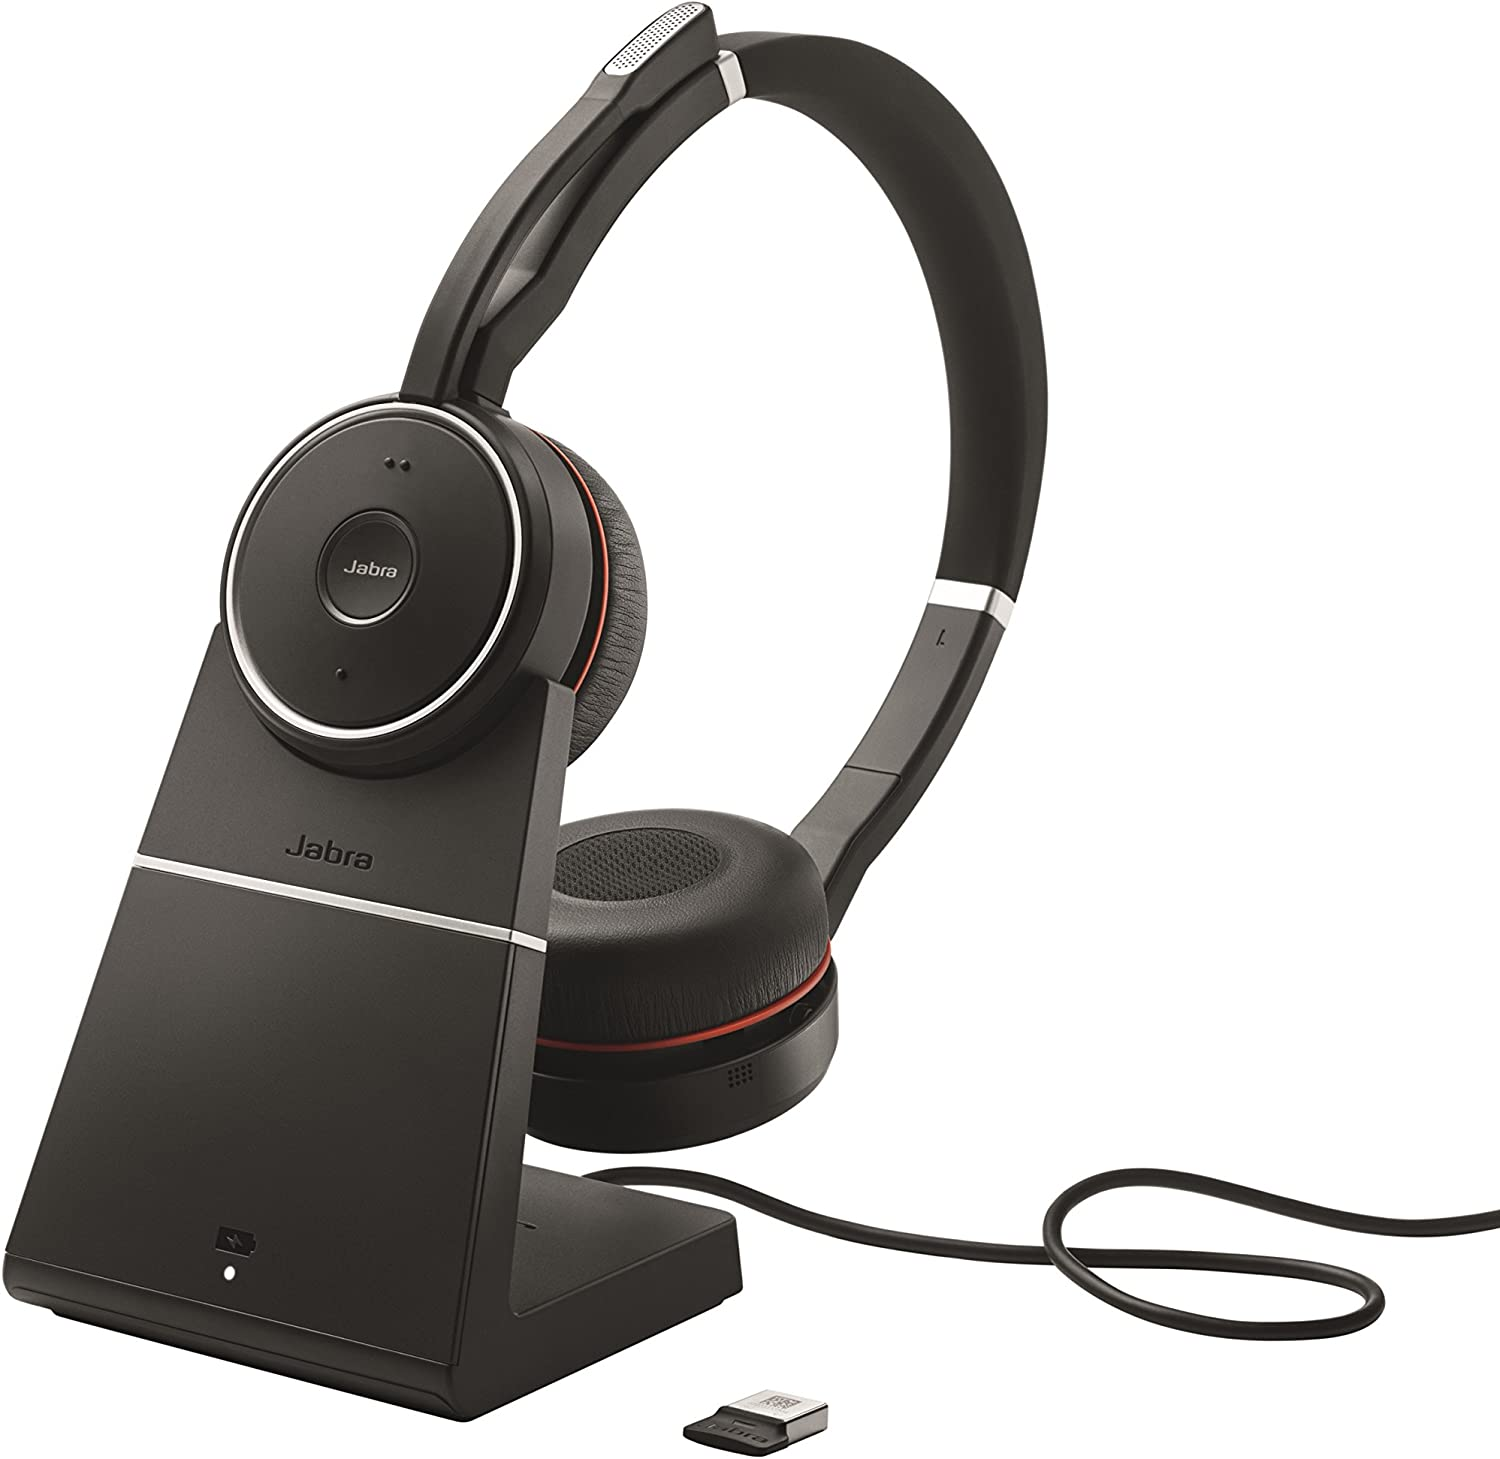 Amazon Com Jabra Evolve 75 Uc Wireless Headset Stereo Includes Link 370 Usb Adapter And Charging Stand Bluetooth Headset With World Class Speakers Active Noise Cancelling Microphone All Day Battery